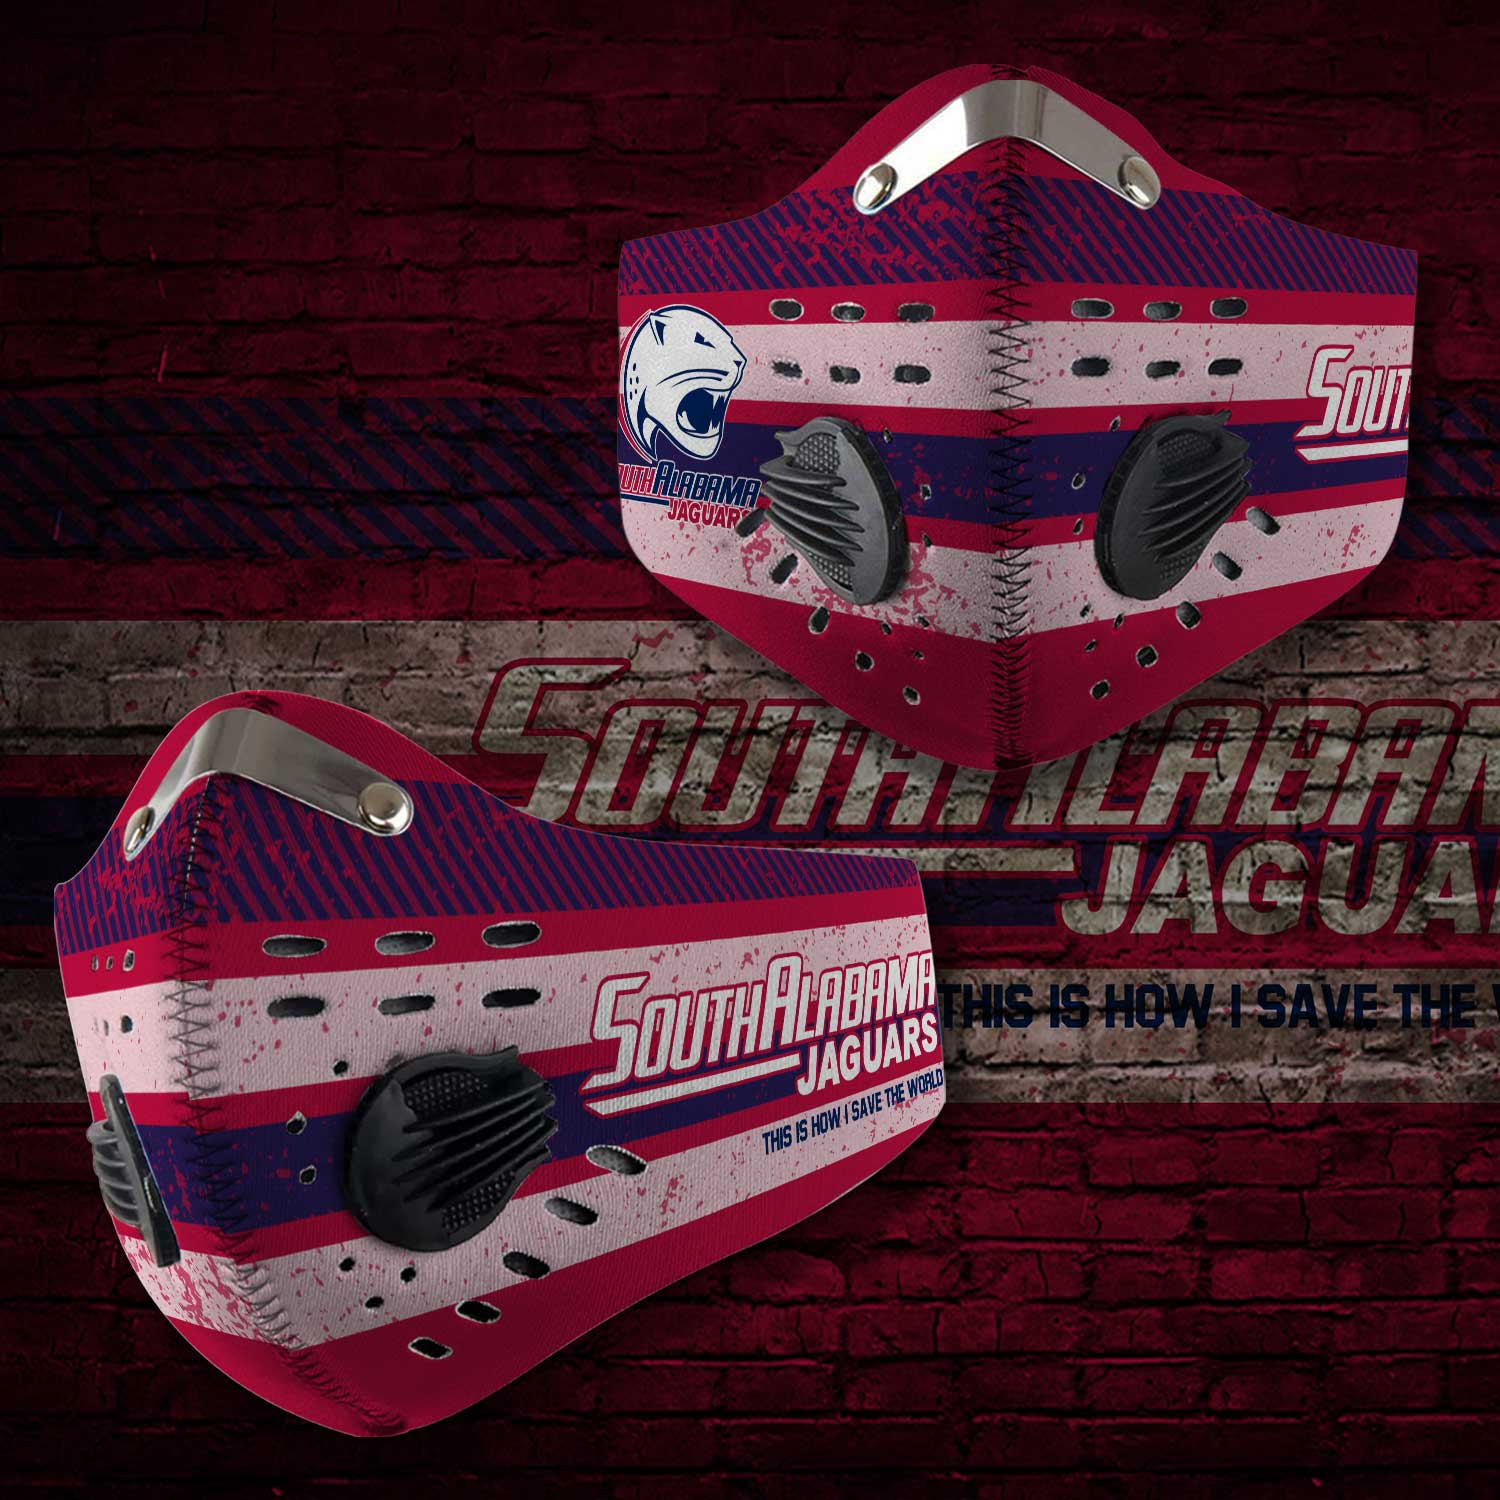 South alabama jaguars this is how i save the world face mask 2